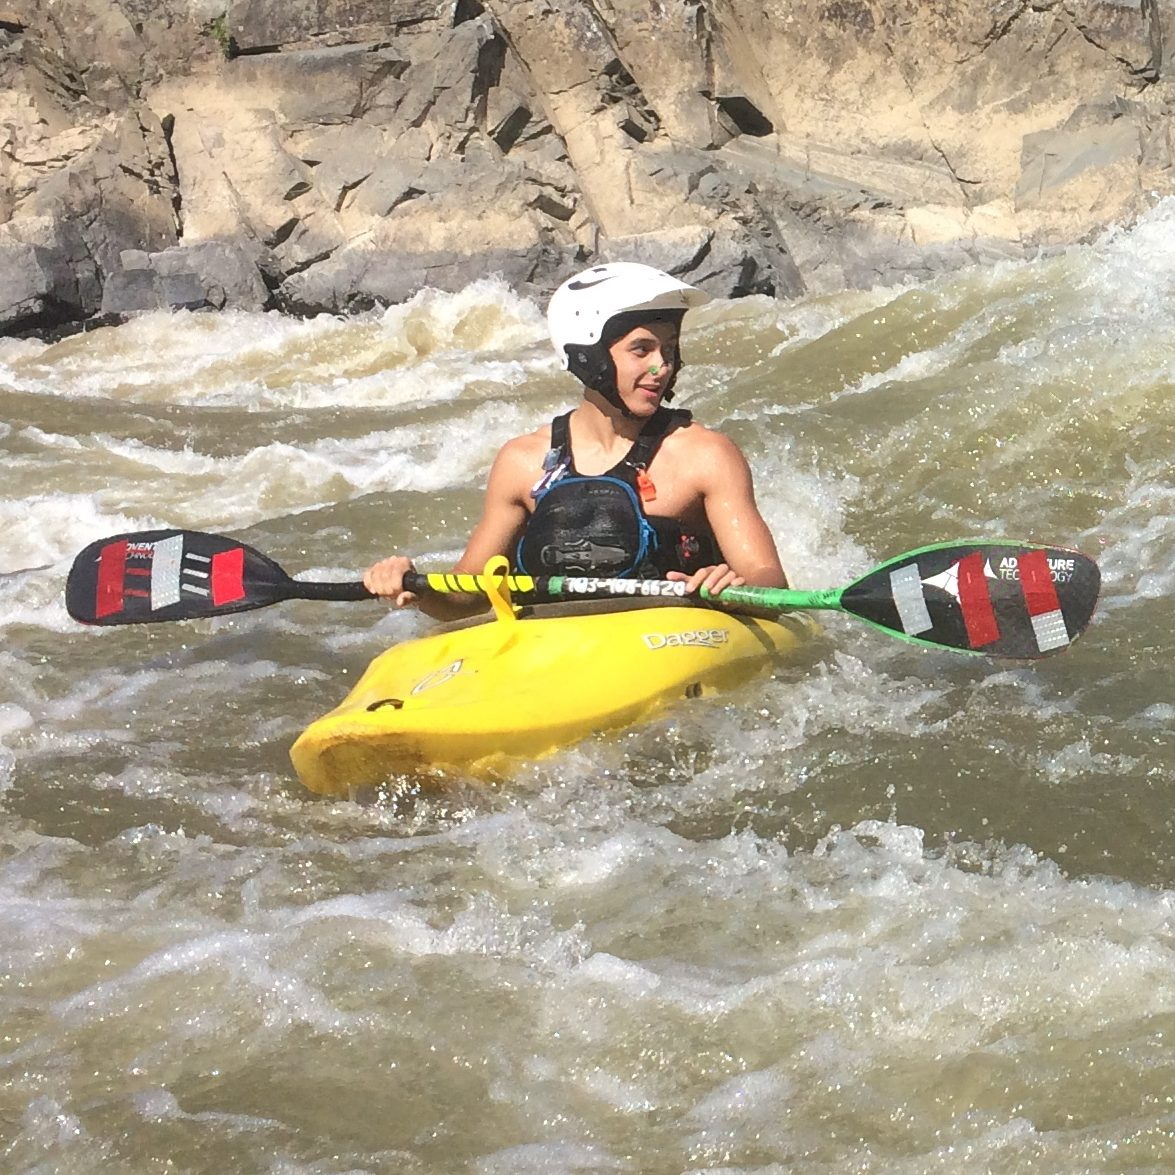 Dagger axiom surfing great falls Kayak lessons at Calleva